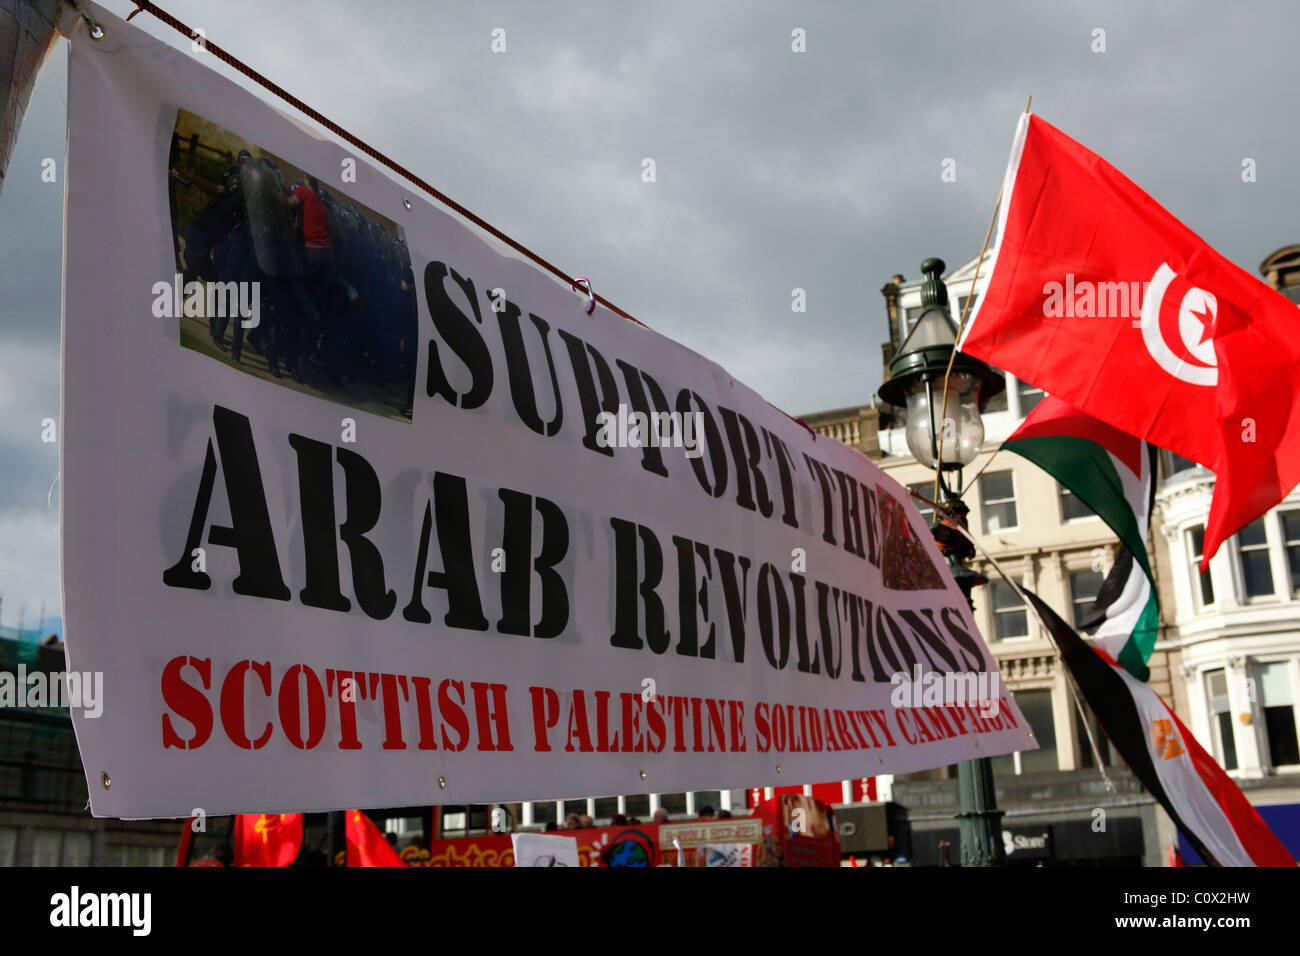 A sign calls for support for the Arab revolutions of 2011 at a demonstration in Edinburgh, Scotland. - Stock Image